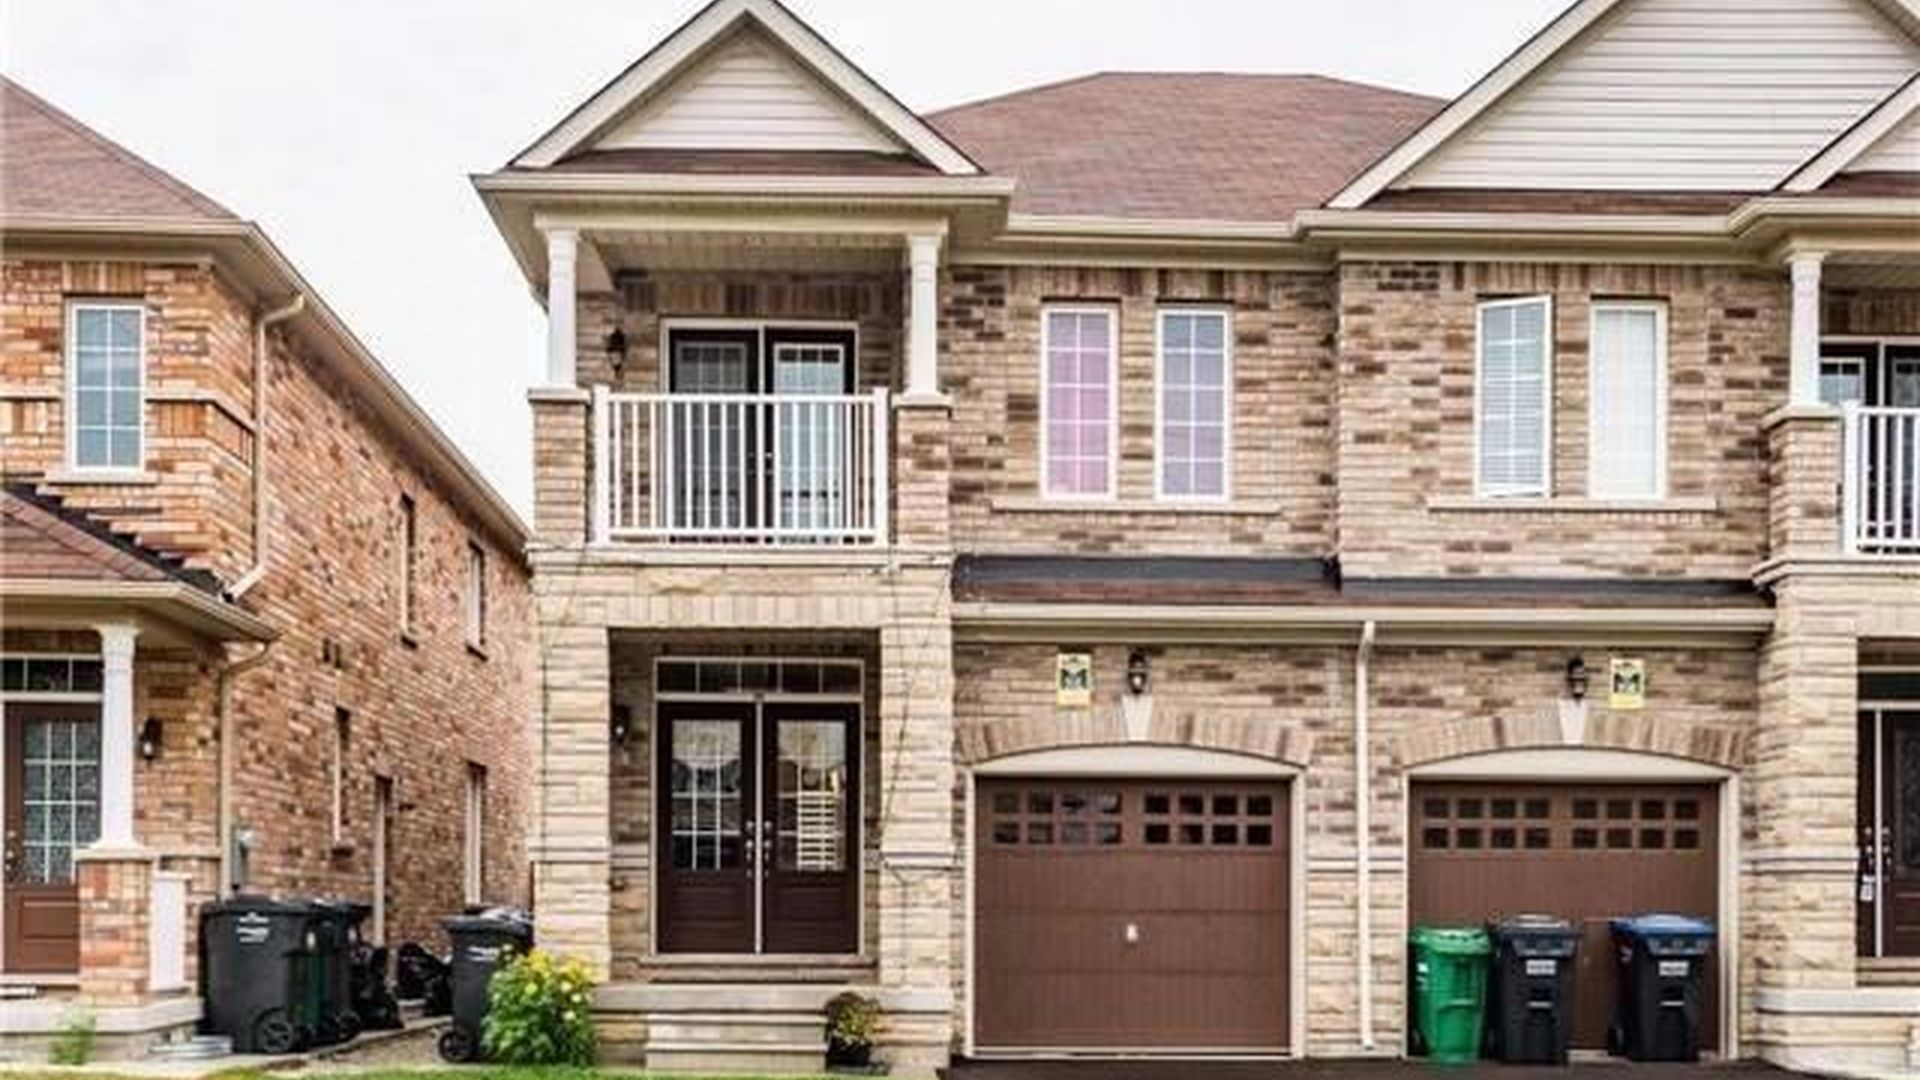 Brilliant Houses For Rent In Brampton On 66 Homes Zillow Best Image Libraries Barepthycampuscom